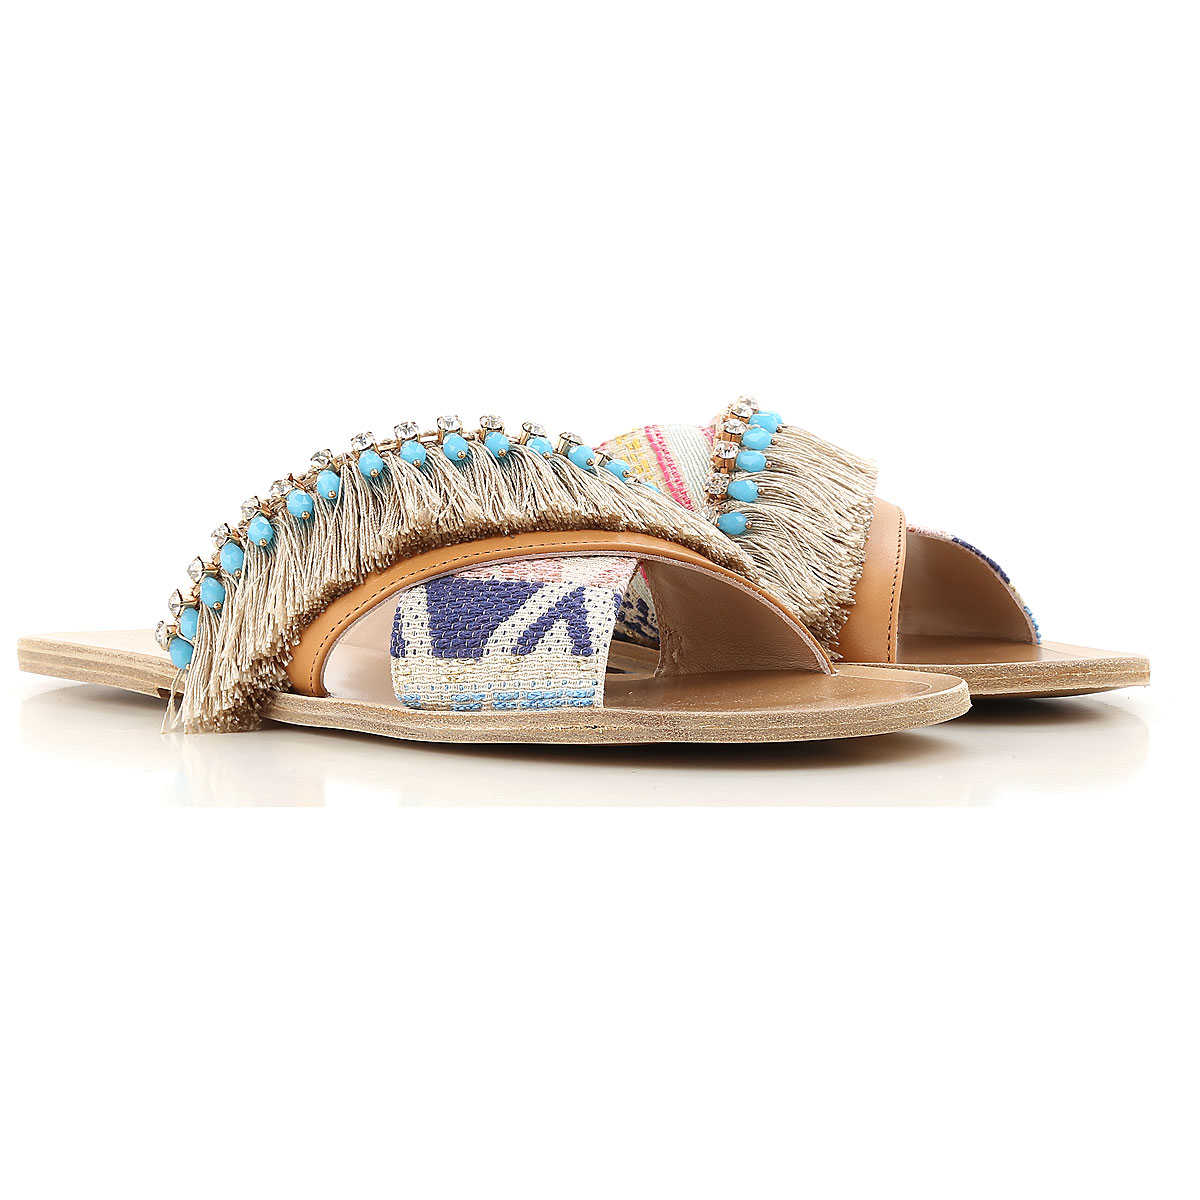 Patrizia Pepe Sandals for Women On Sale in Outlet